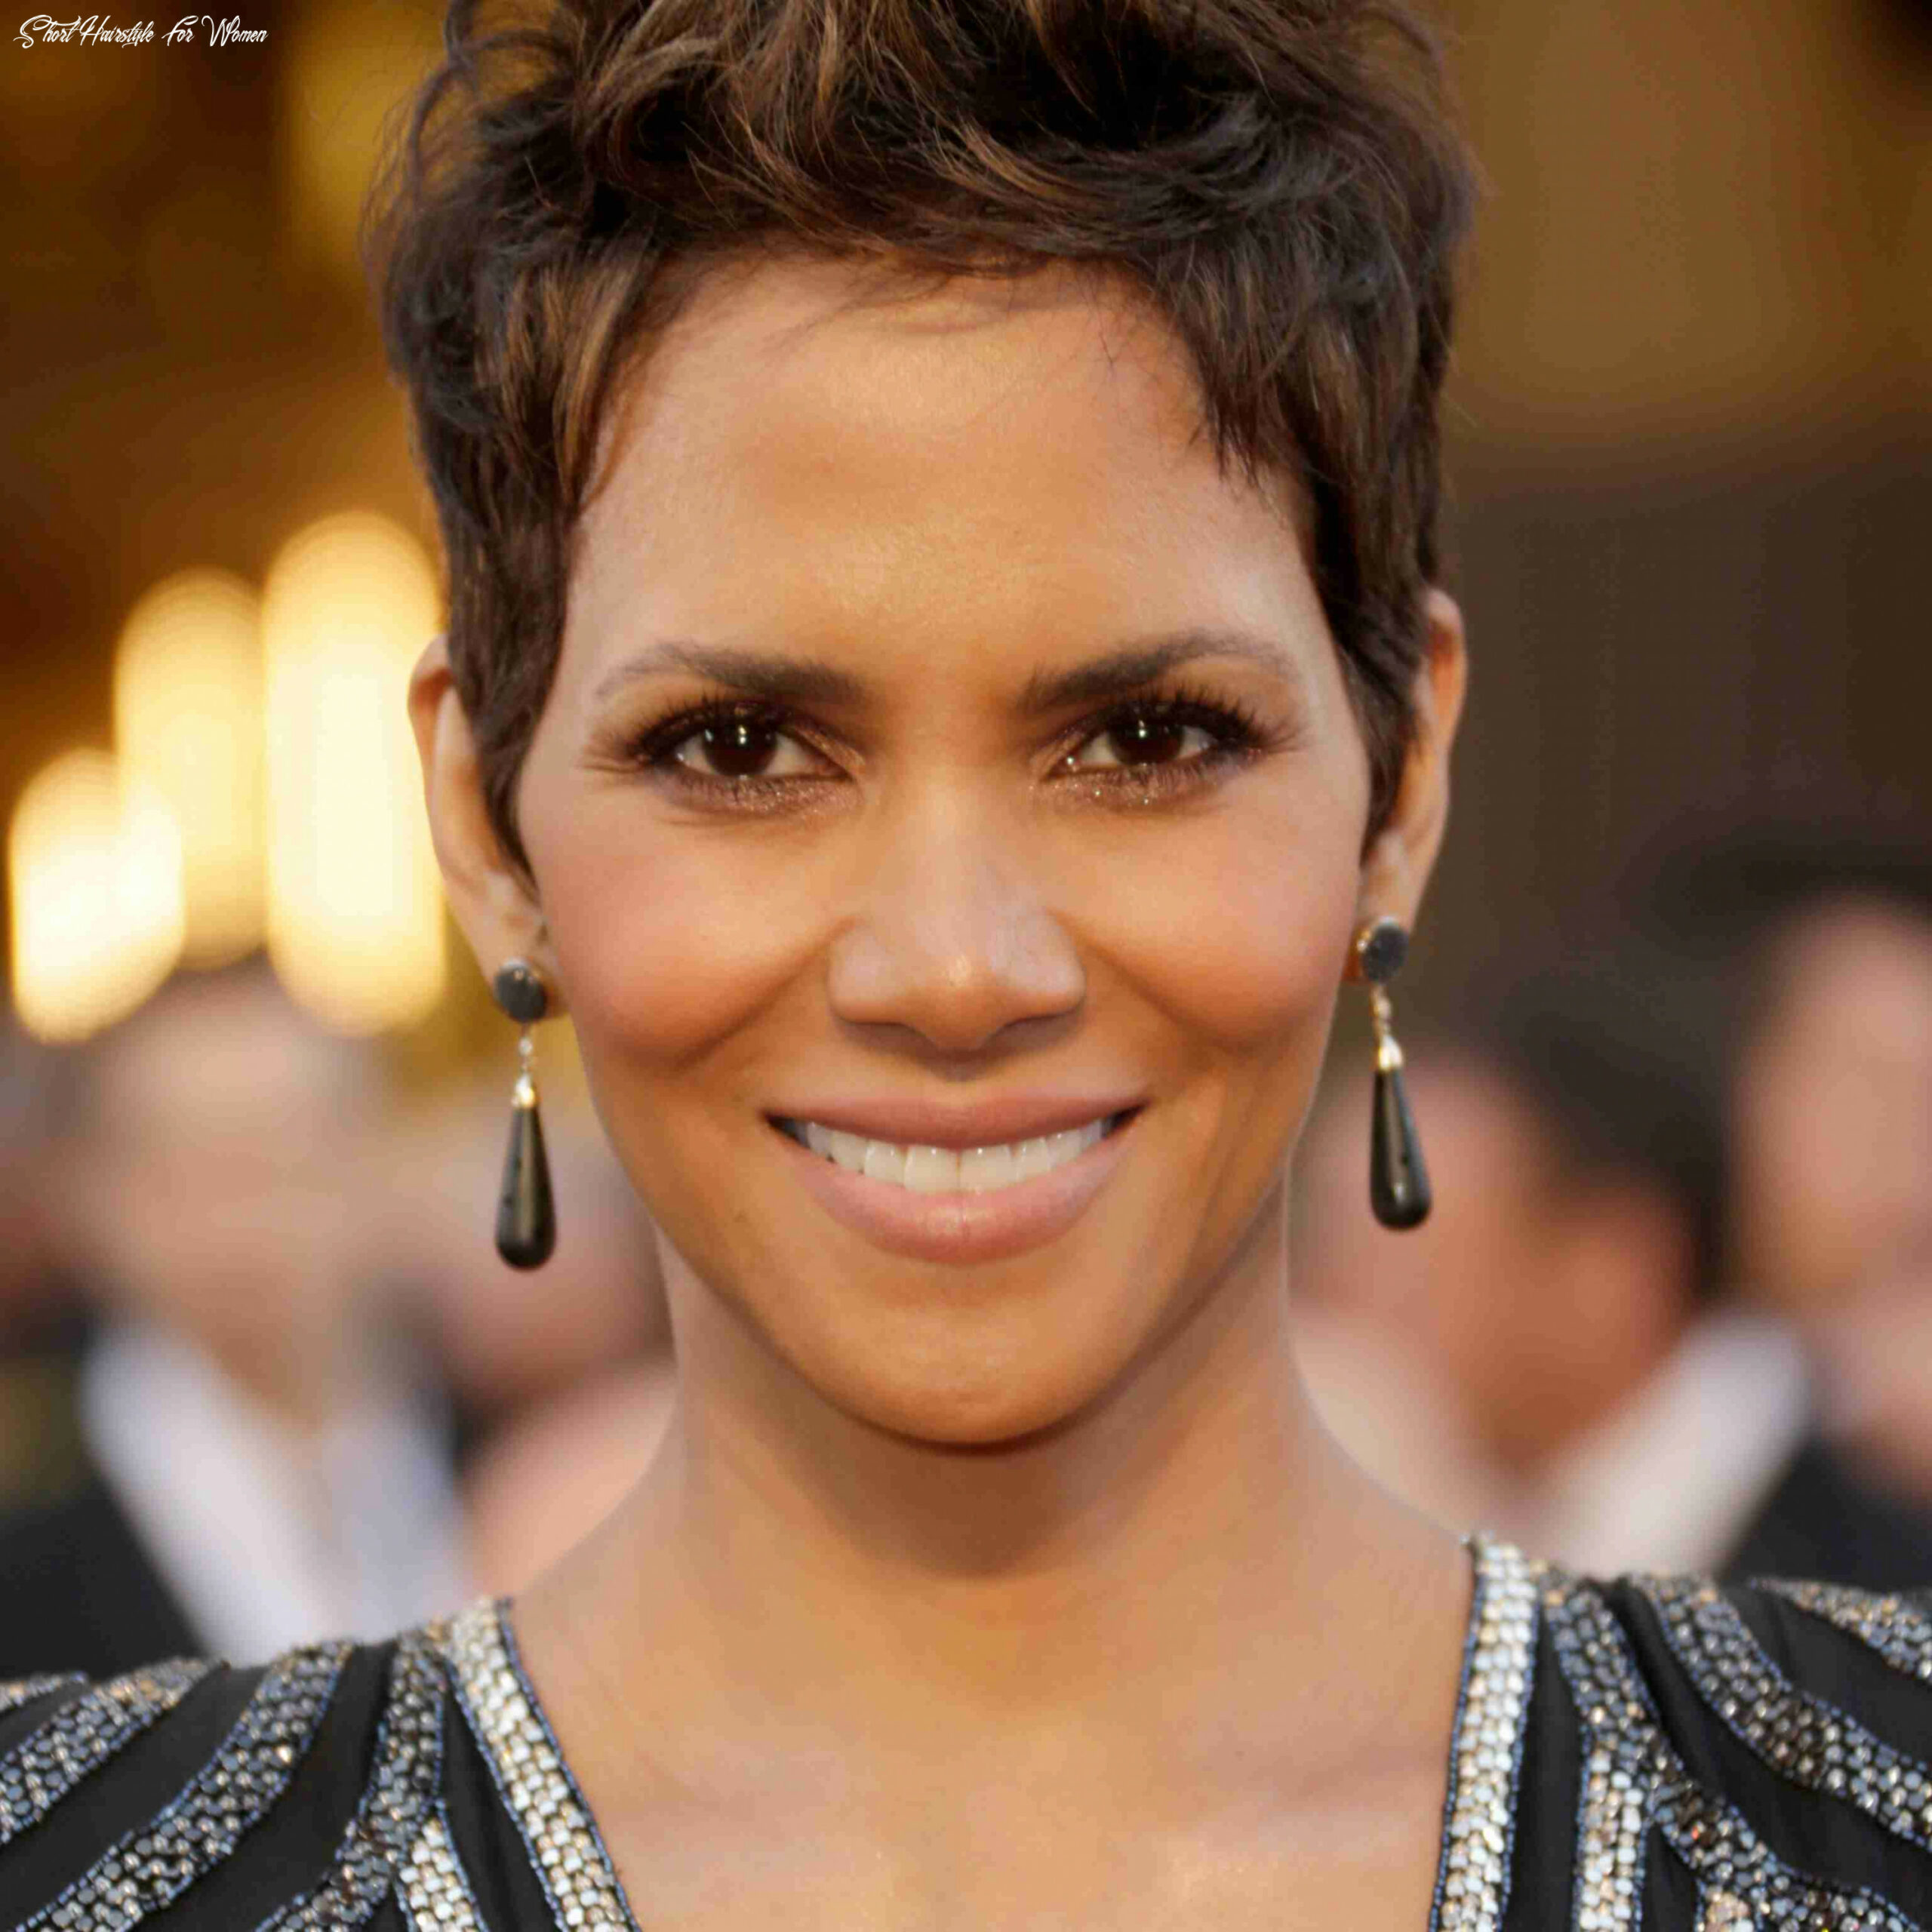 11 classic and cool short hairstyles for older women short hairstyle for women